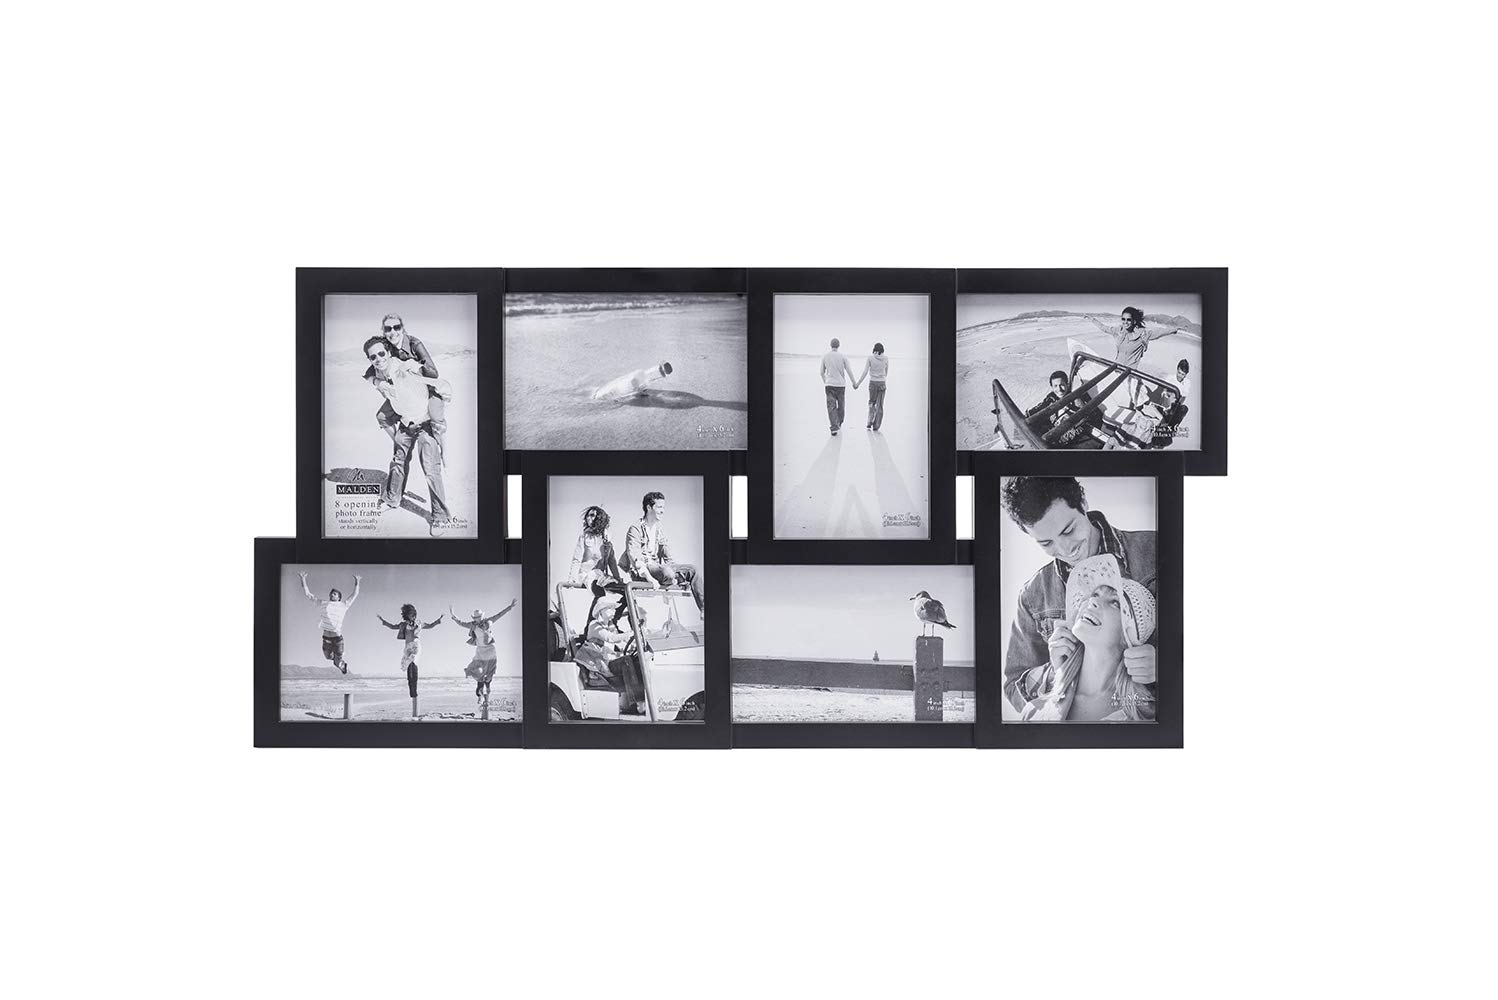 Malden 4x6 8-Opening Collage Matted Picture Frame - Displays Eight 4x6 Pictures - Black